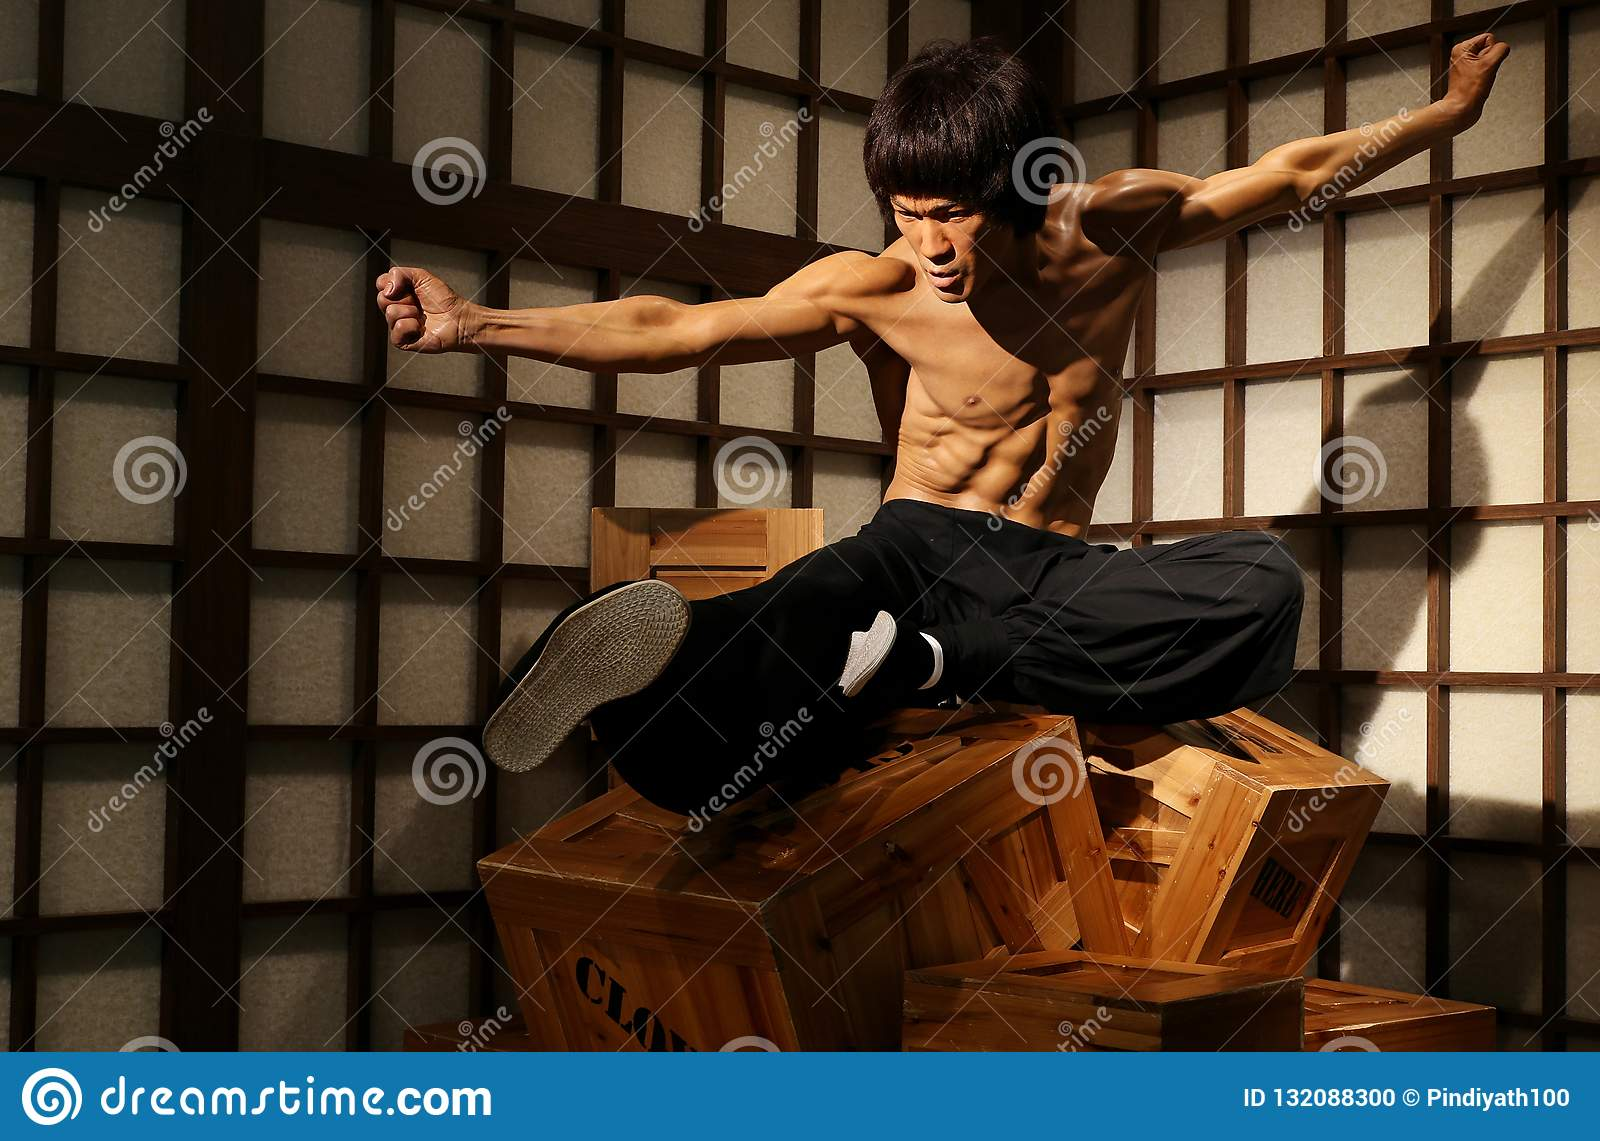 Bruce Lee Hollywood Actor Wax Figure At Madame Tussauds In Hong Kong